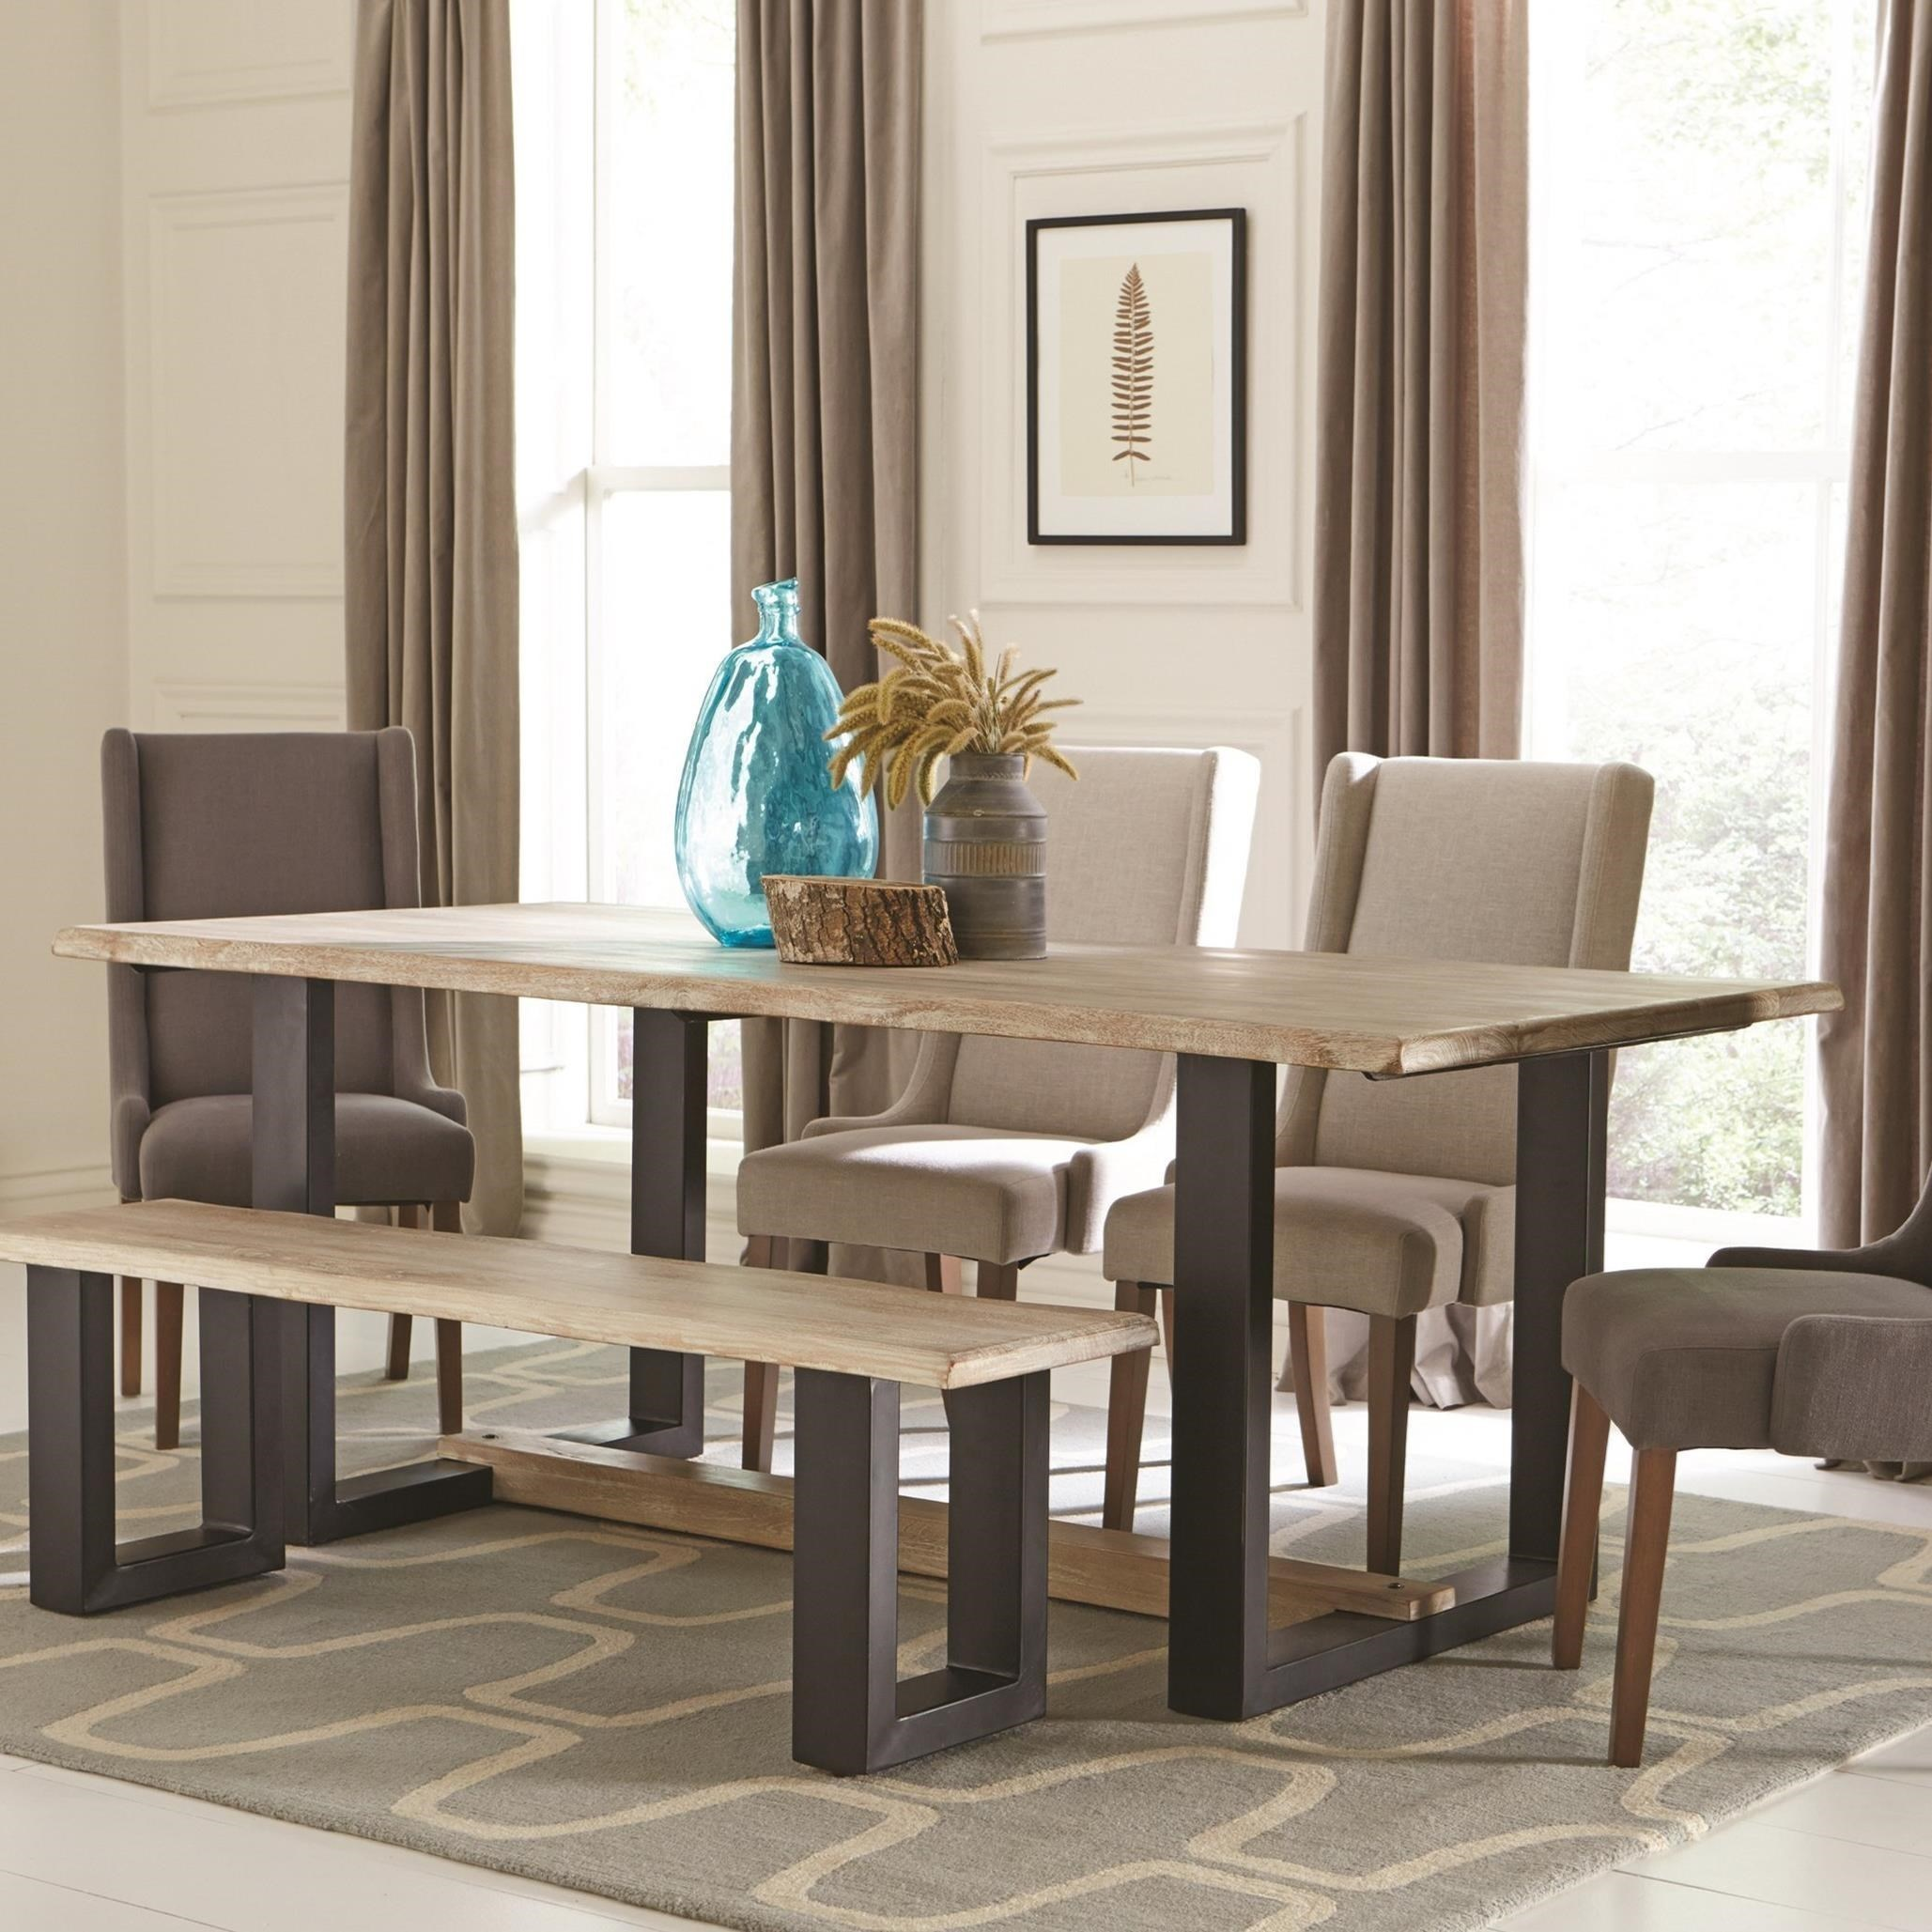 Coaster Levine Contemporary Dining Table With U Shaped Base   Coaster Fine  Furniture